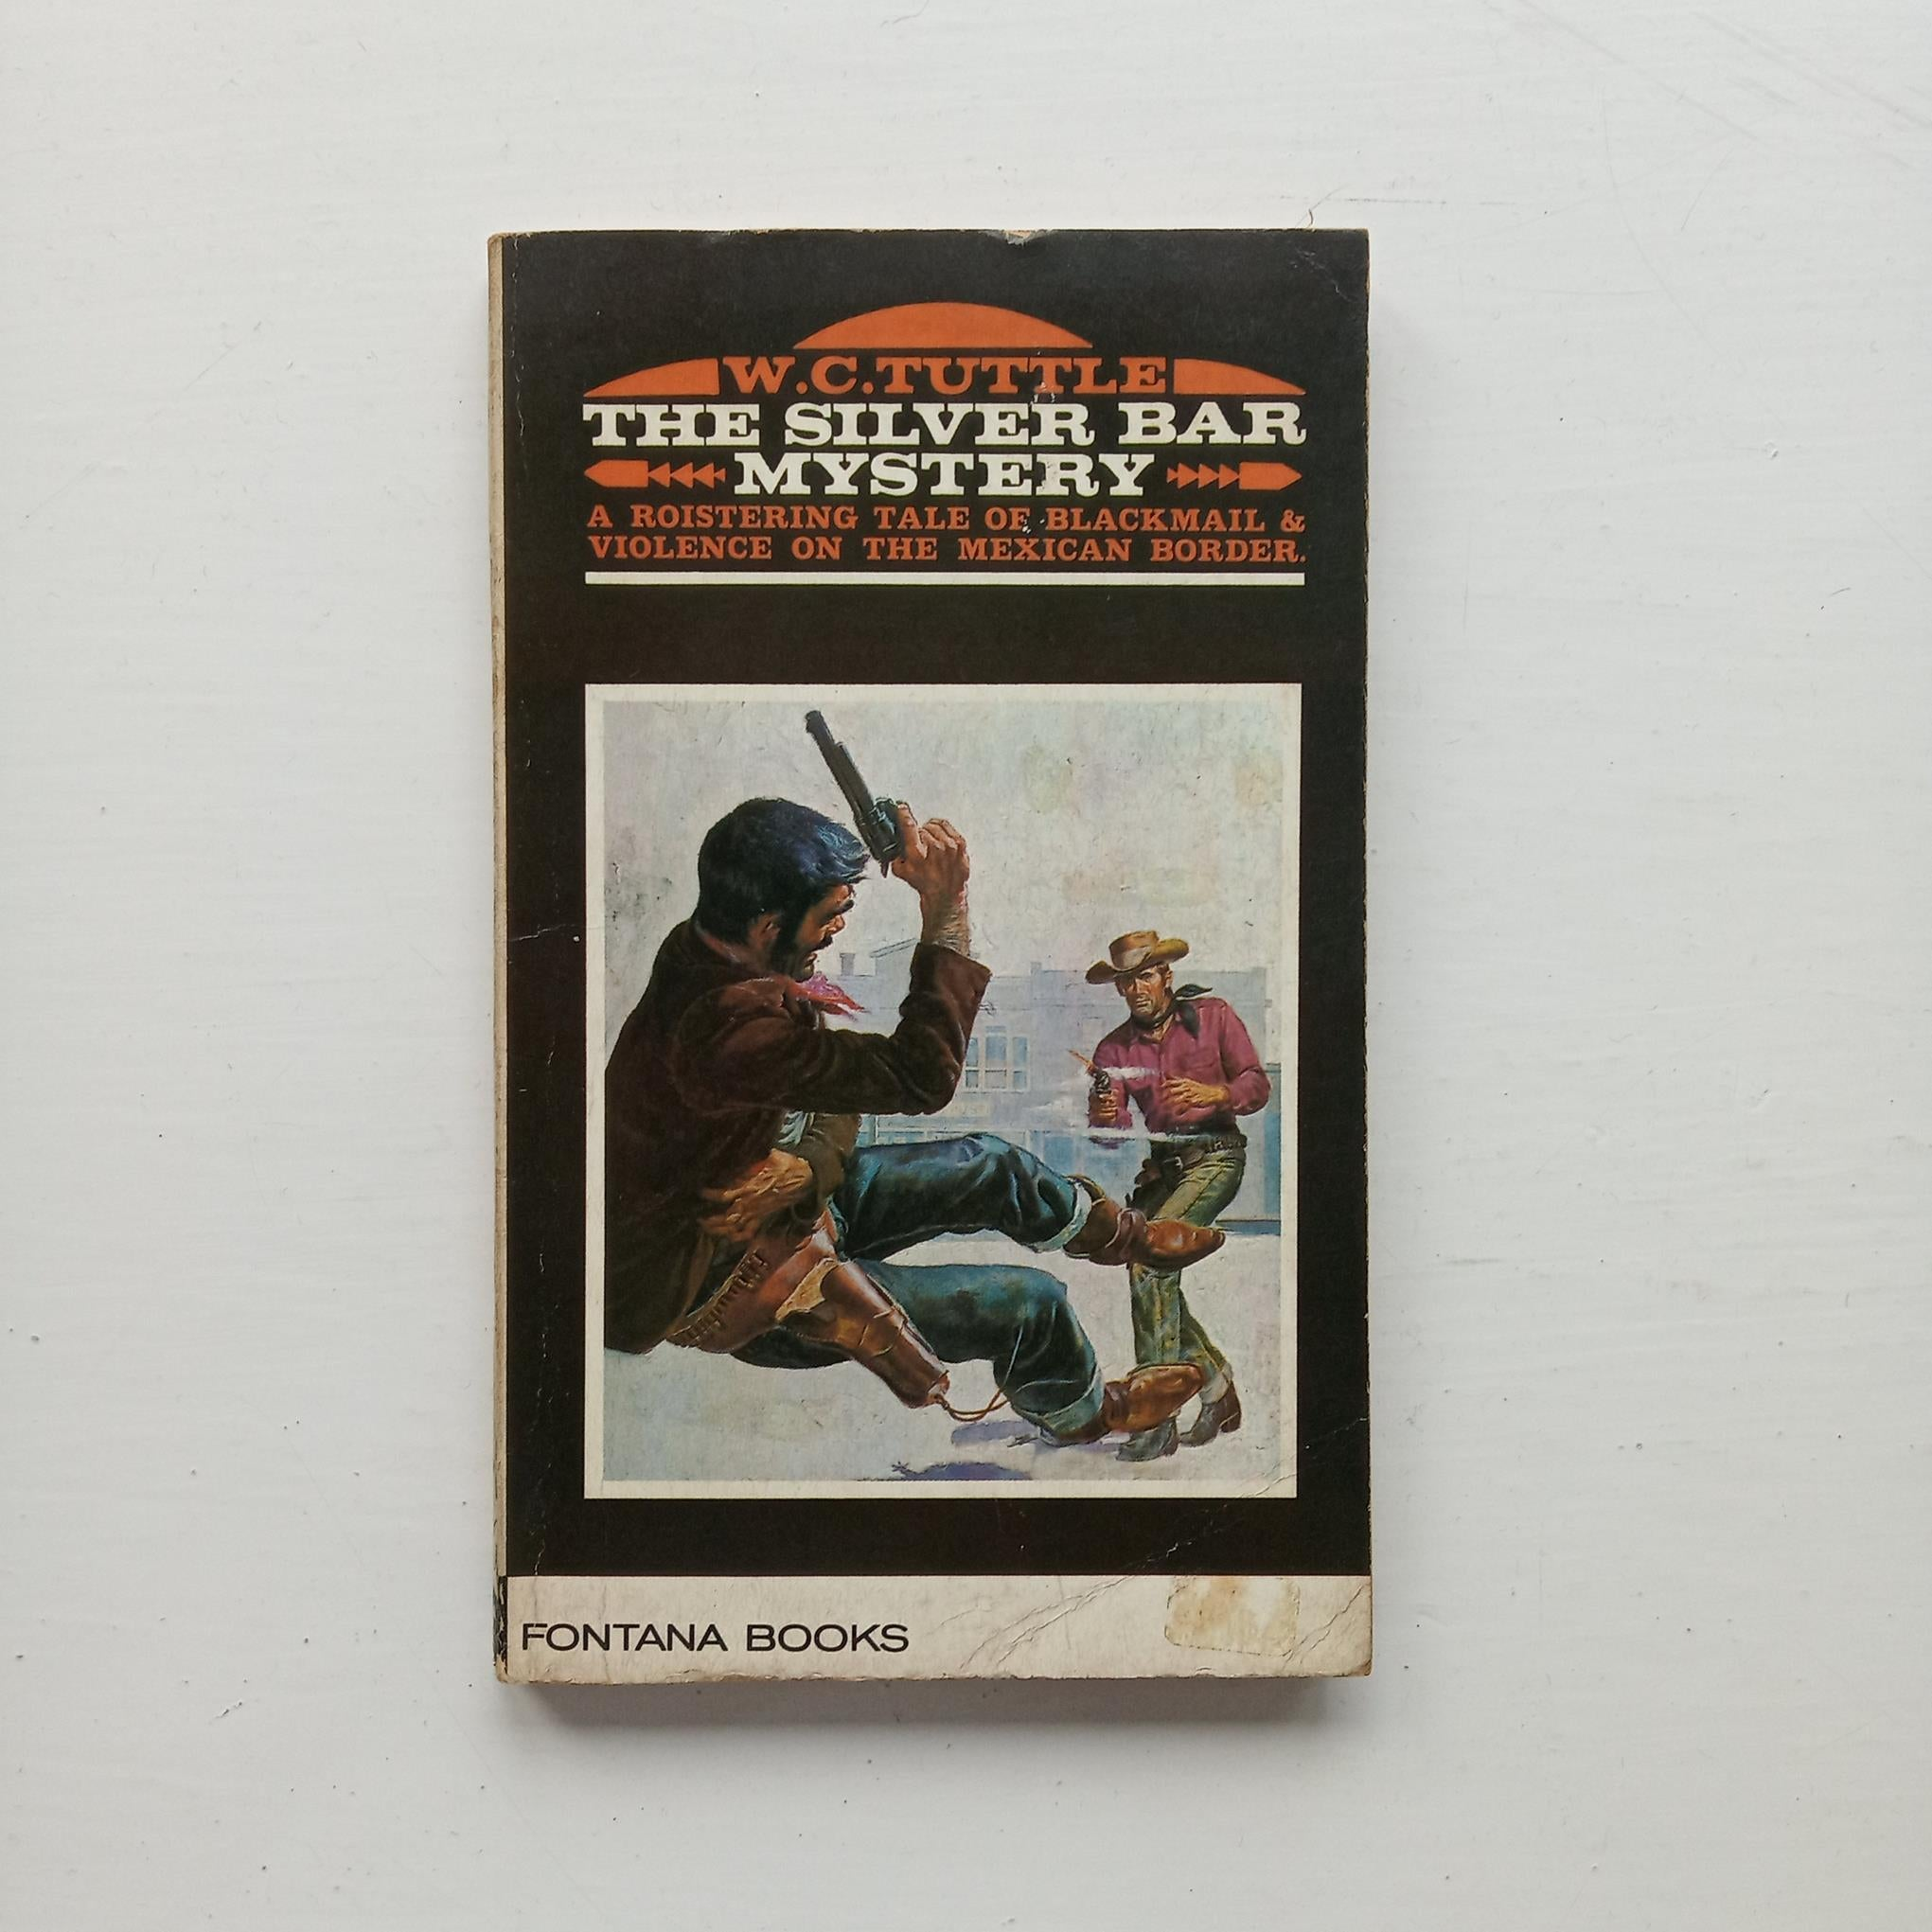 The Silver Bar Mystery by W. C. Tuttle